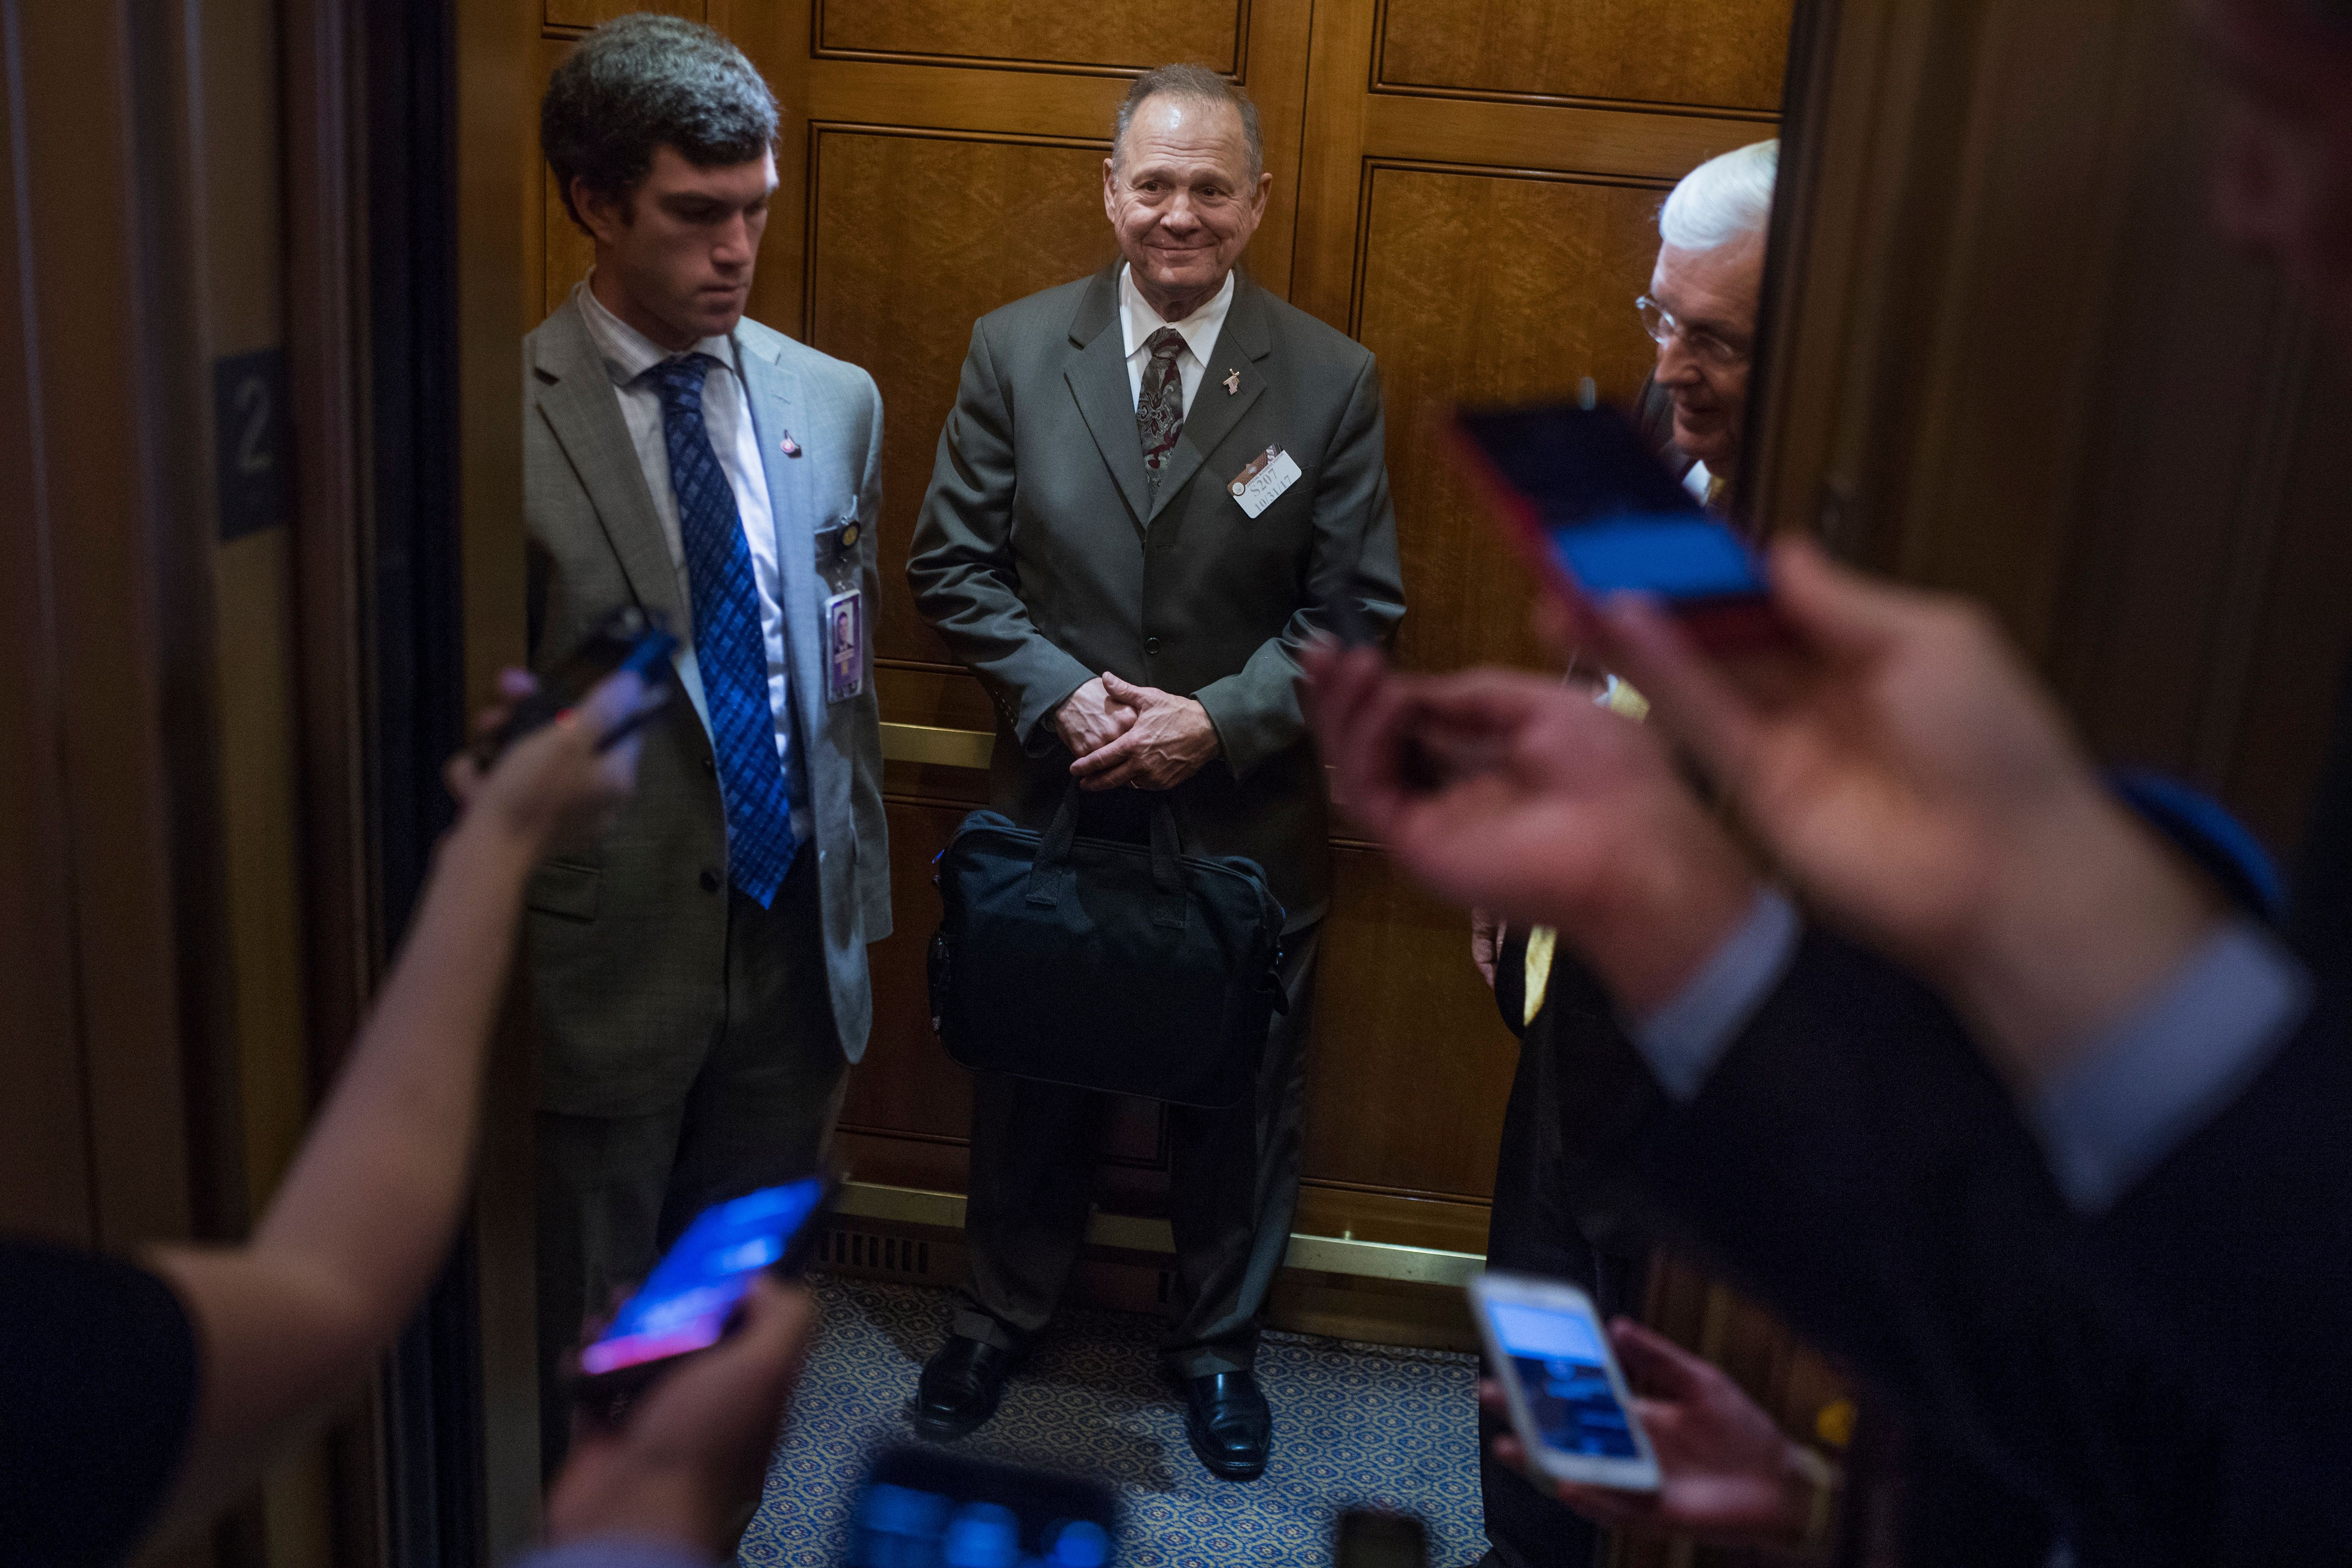 UNITED STATES - OCTOBER 31: Alabama Republican Senate nominee Roy Moore, is questioned by the media in the Capitol on October 31, 2017. (Photo By Tom Williams/CQ Roll Call)